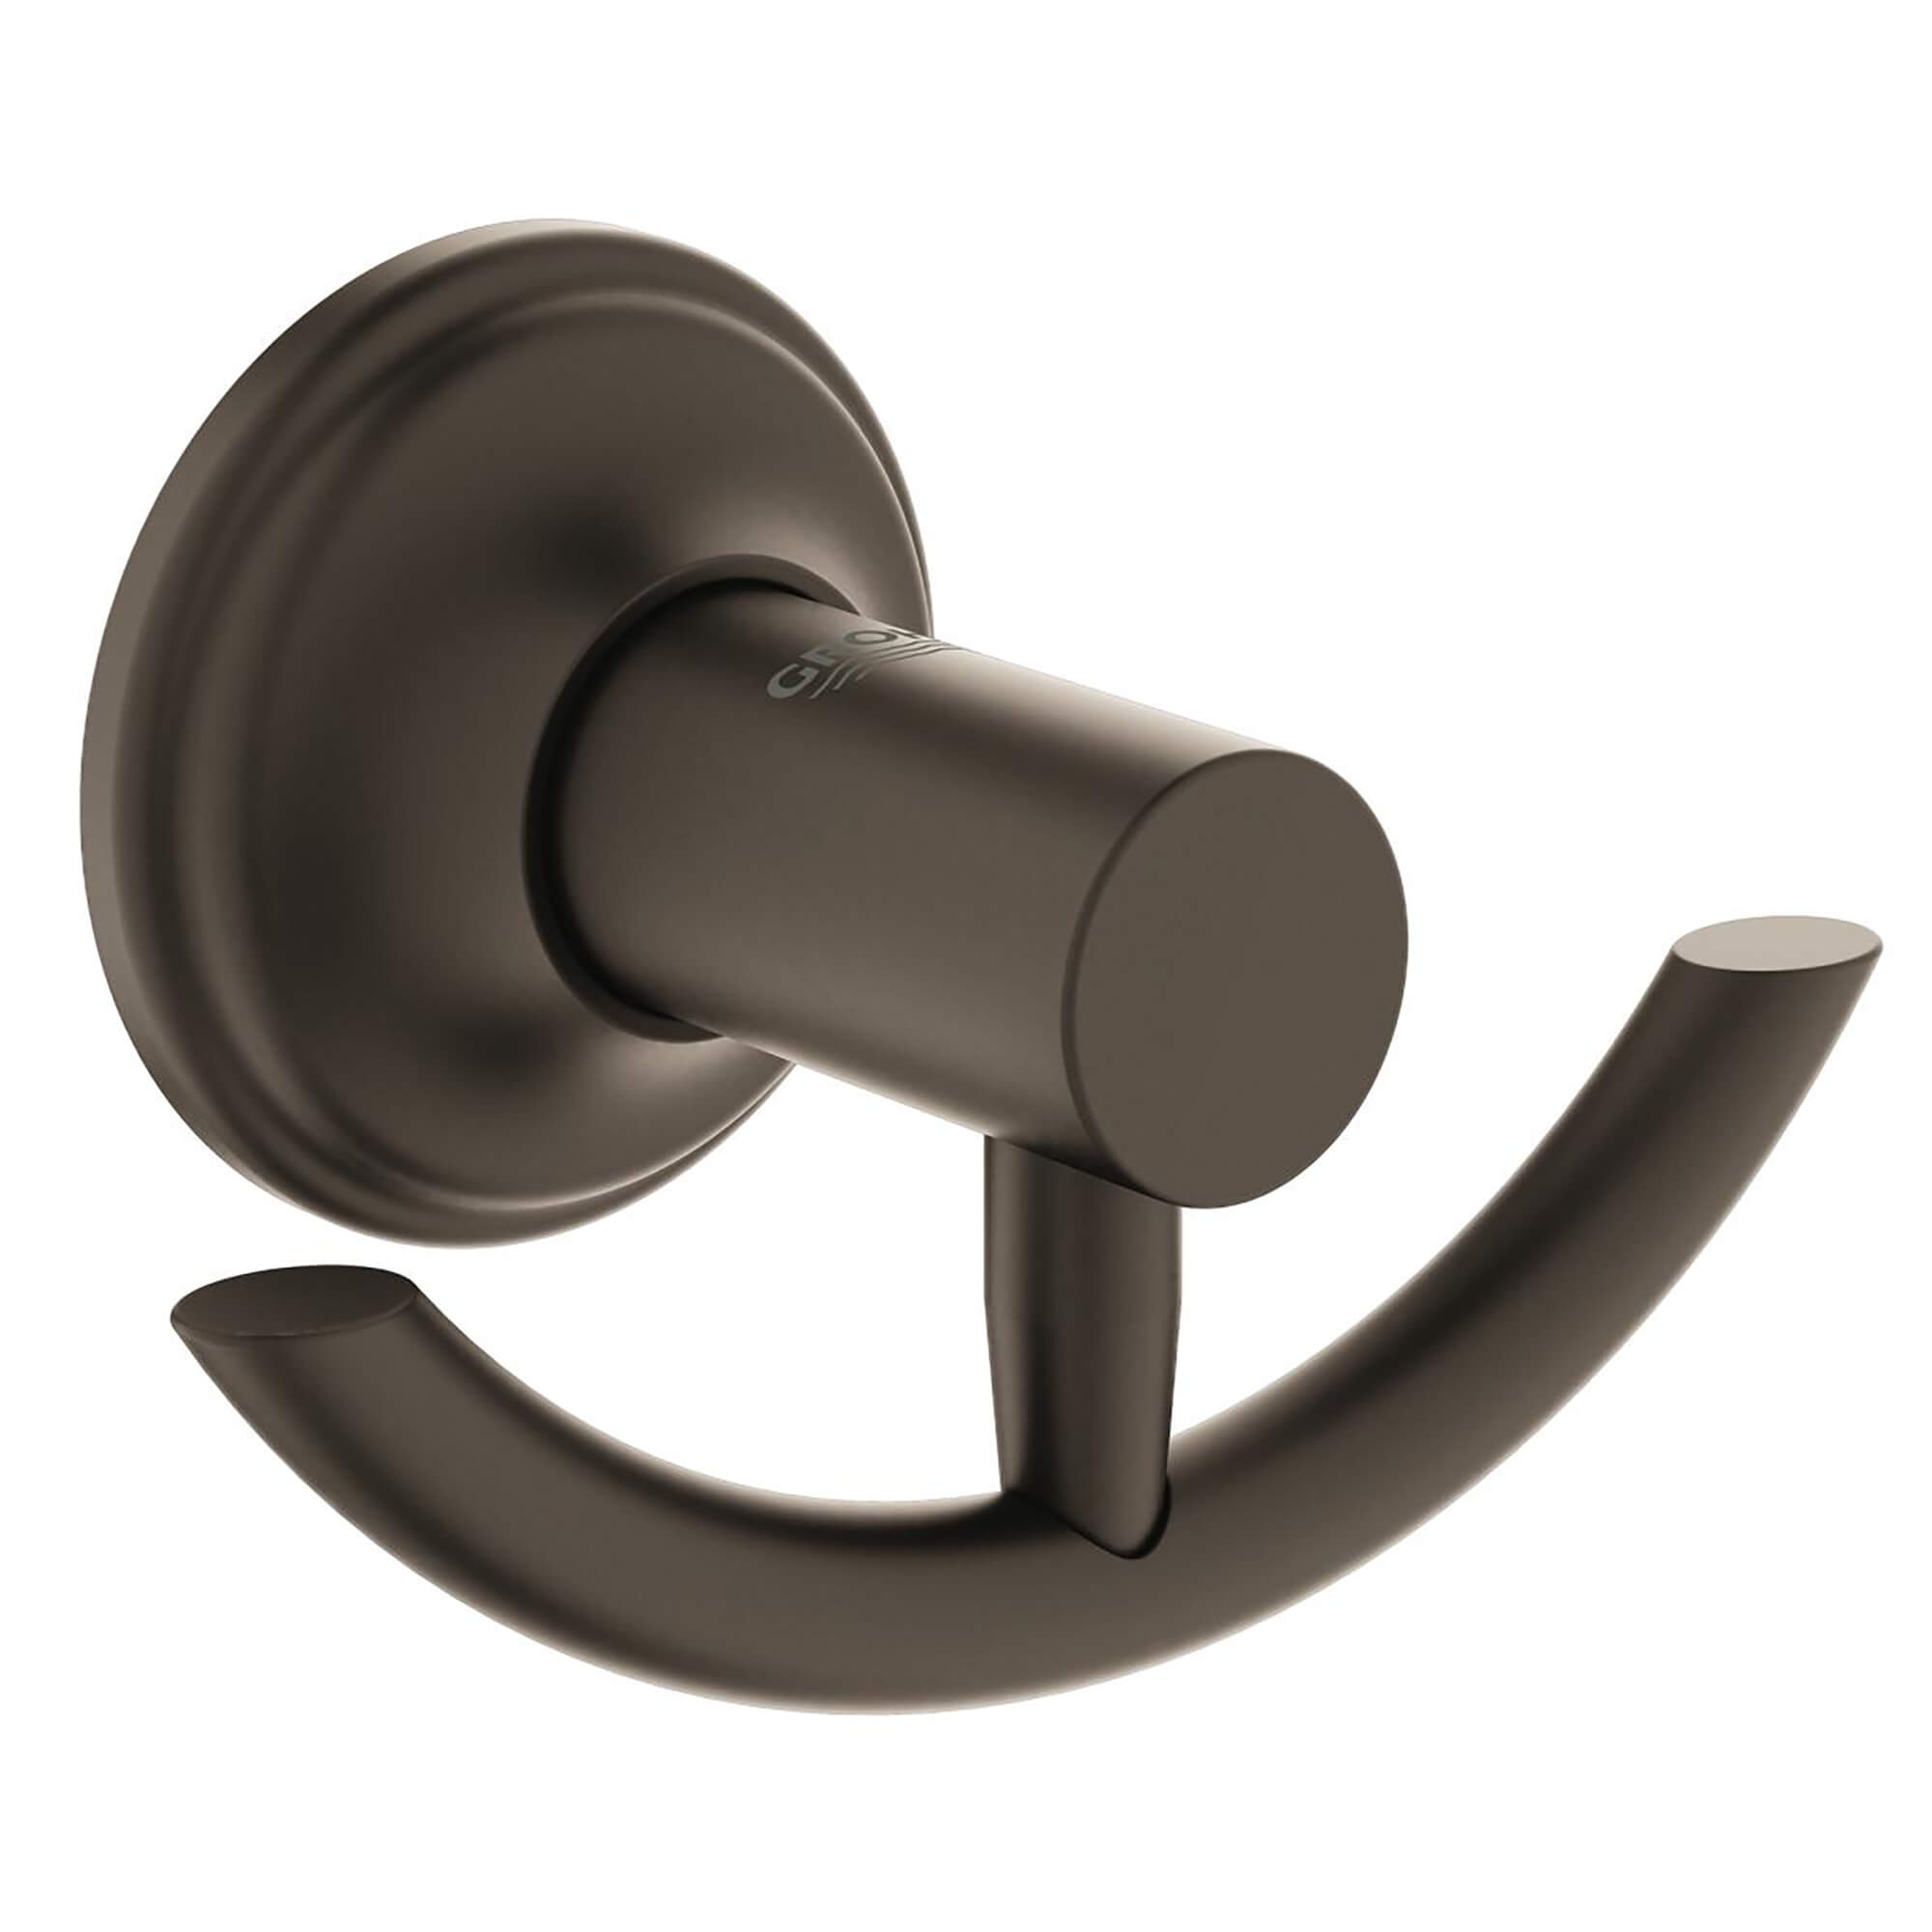 Porte manteau  patère GROHE OIL RUBBED BRONZE